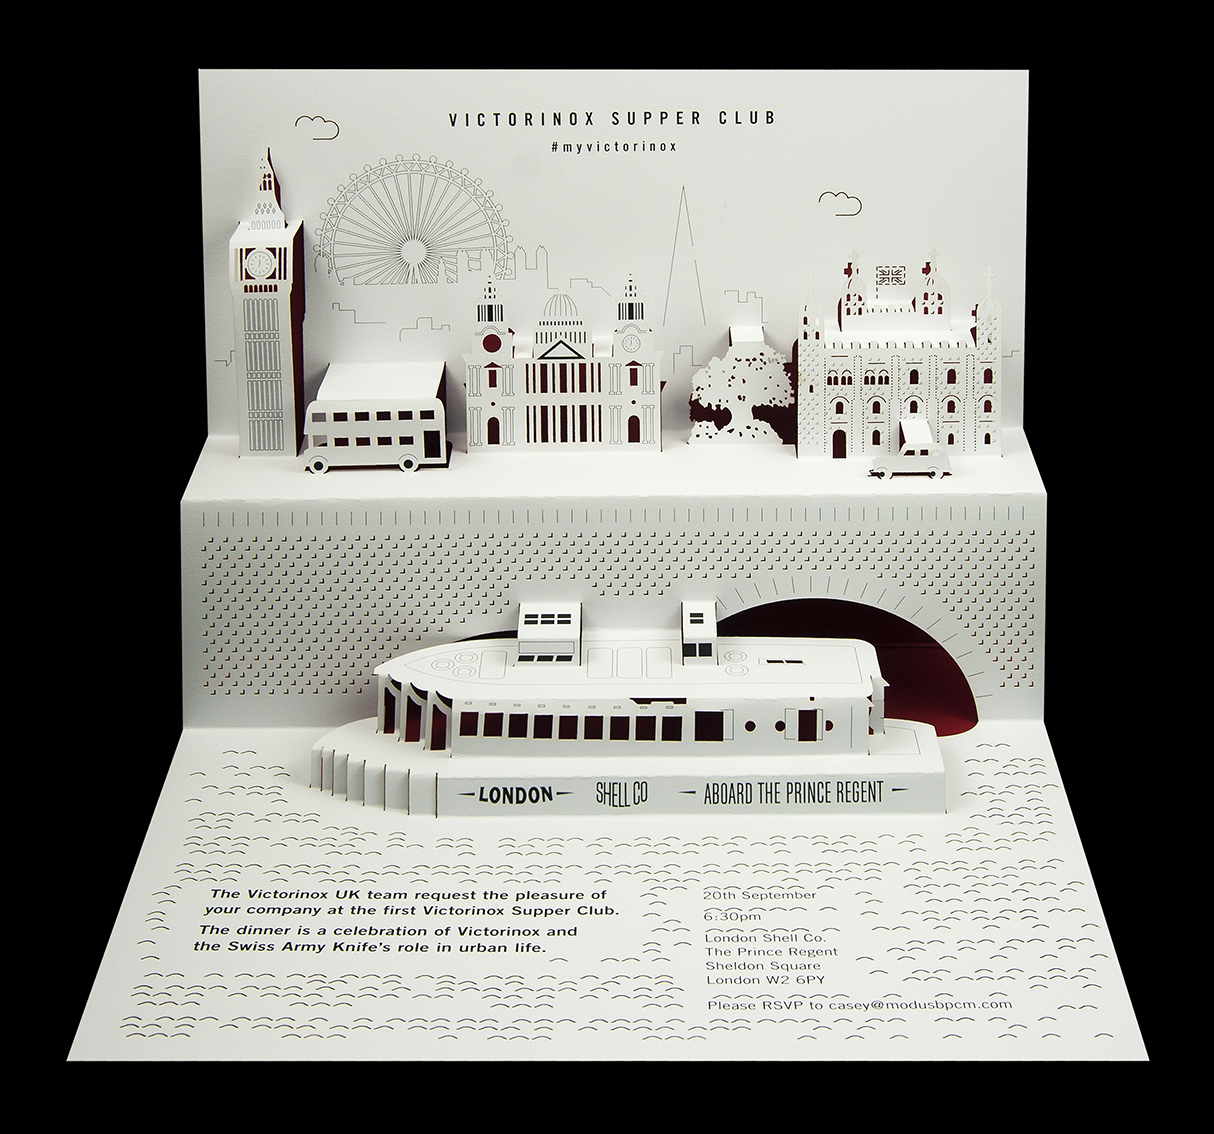 Victorinox - Supper Club pop-up invitation